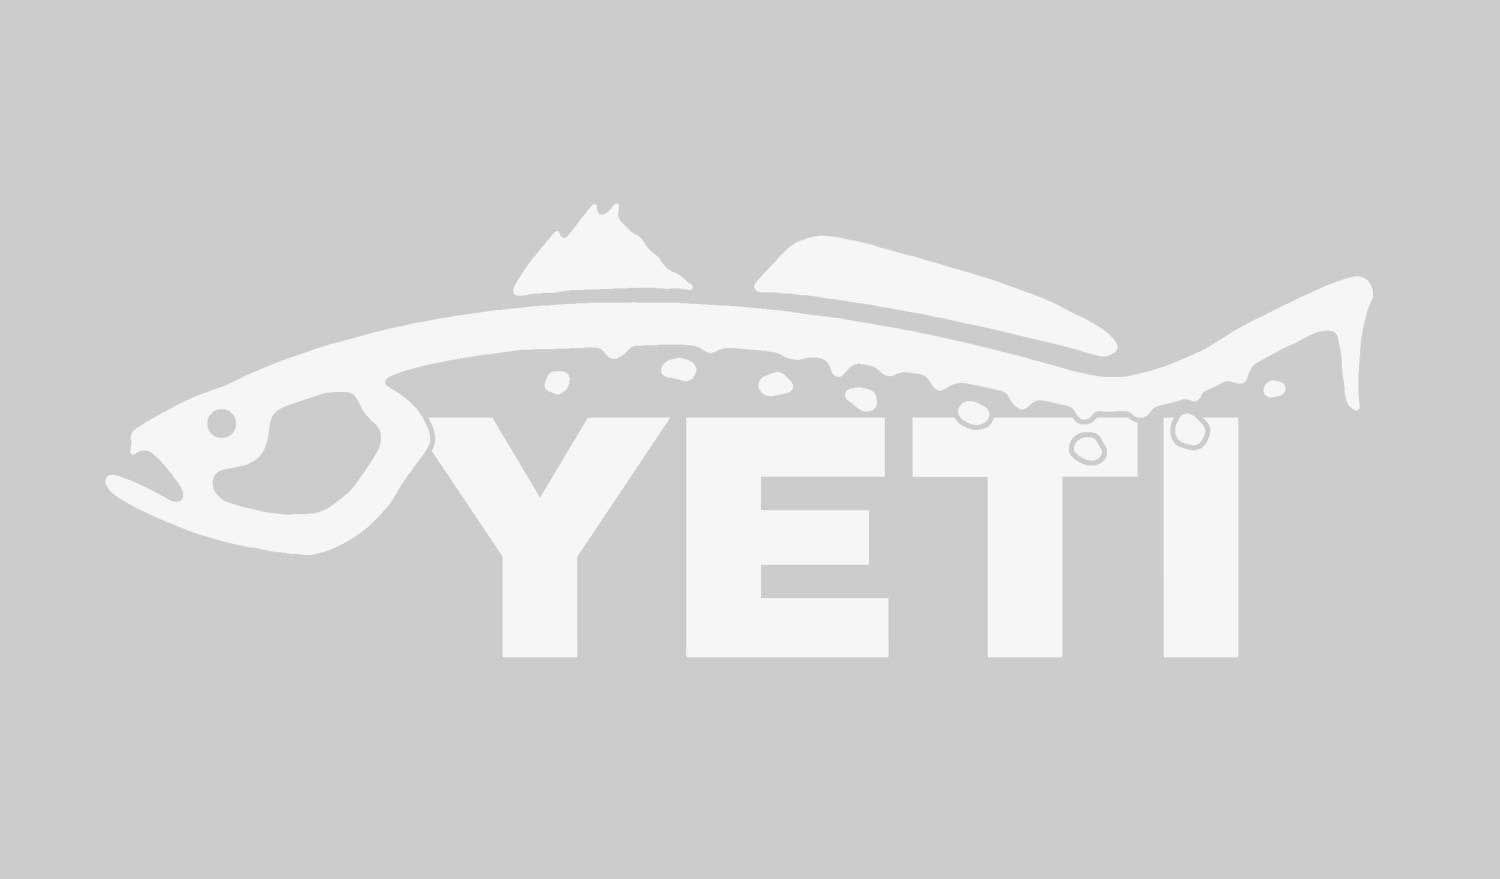 Yeti Trout Window Decal Dicks Sporting Goods Salty Kanye Ohstick Antigravity Sticker Noimagefound